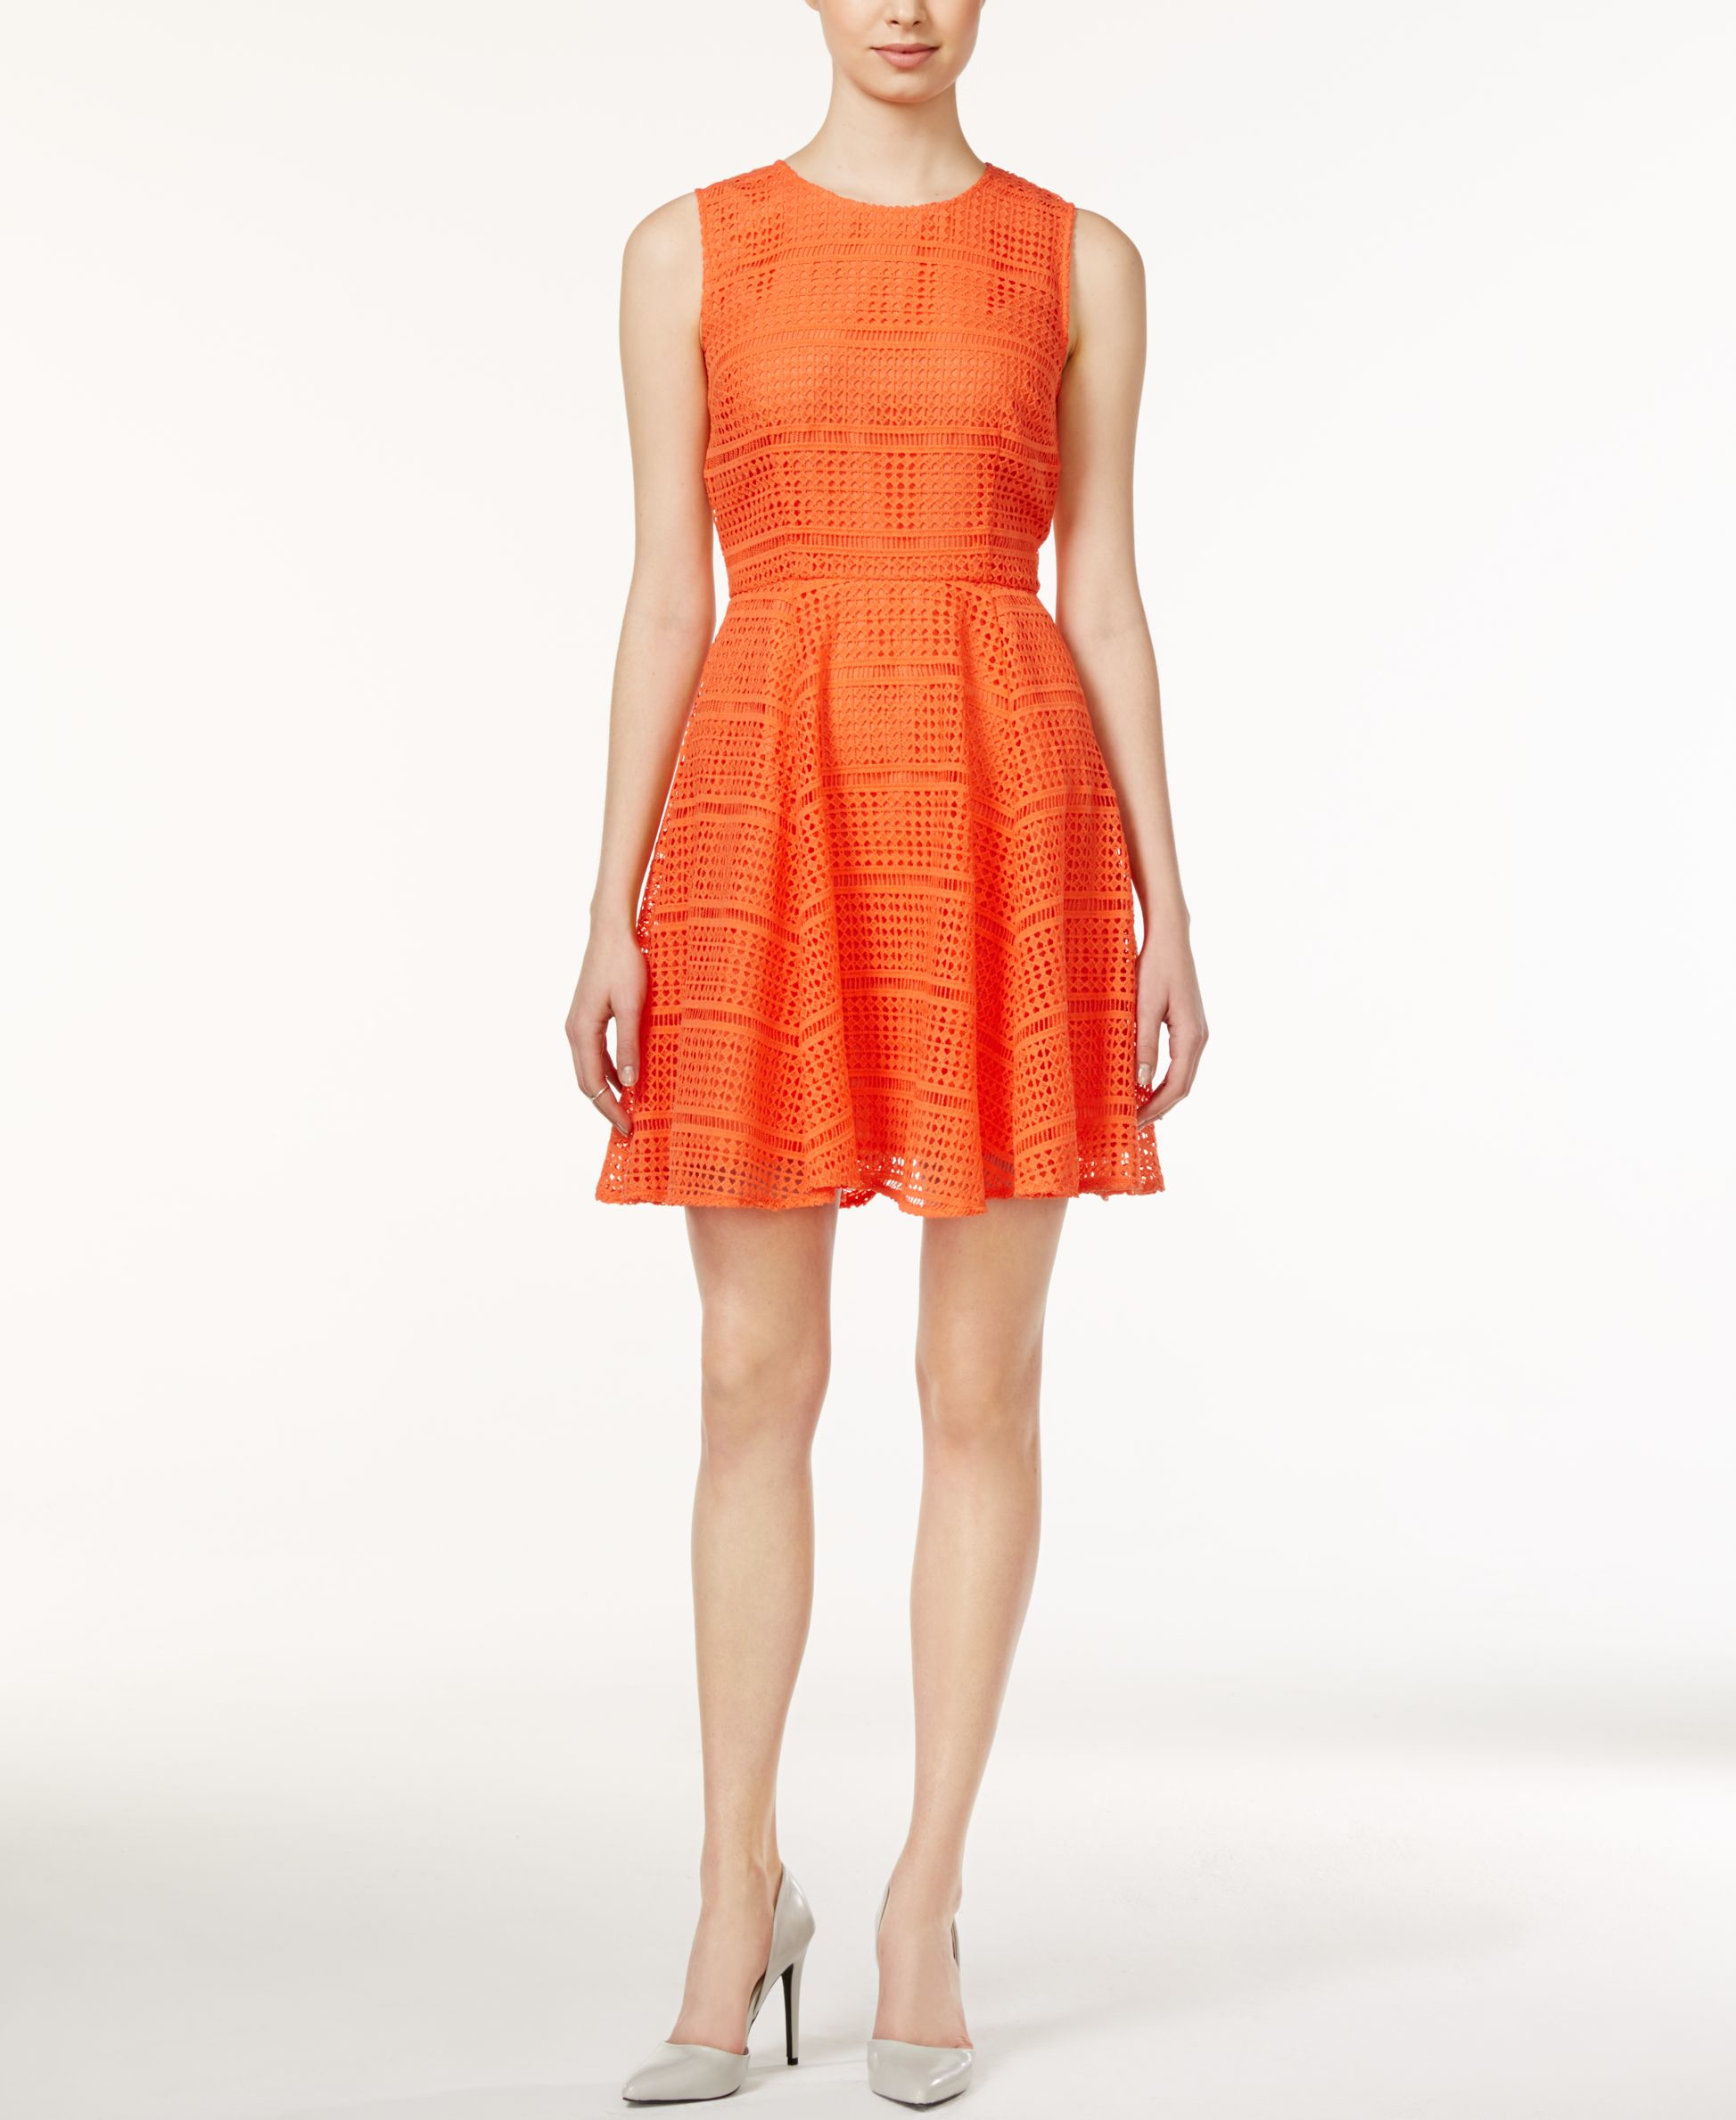 Maison Jules Sleeveless Lace Fit Amp Flare Dress Only At